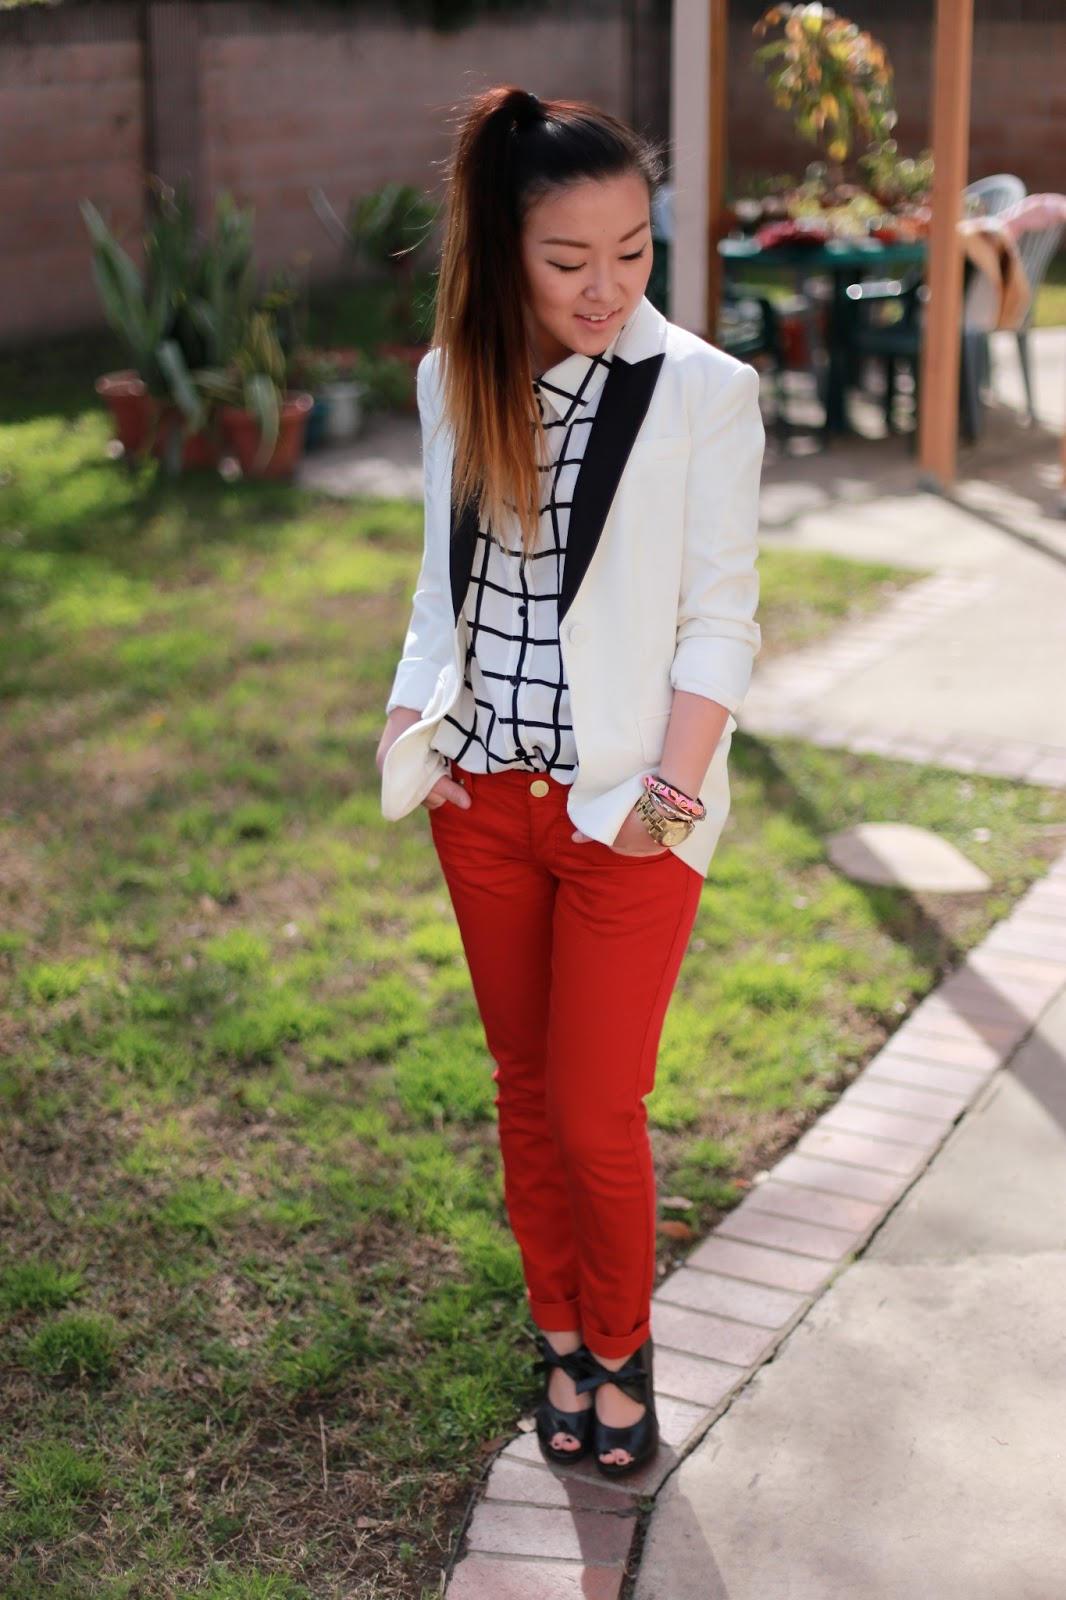 Spiffy Outfit For Girls